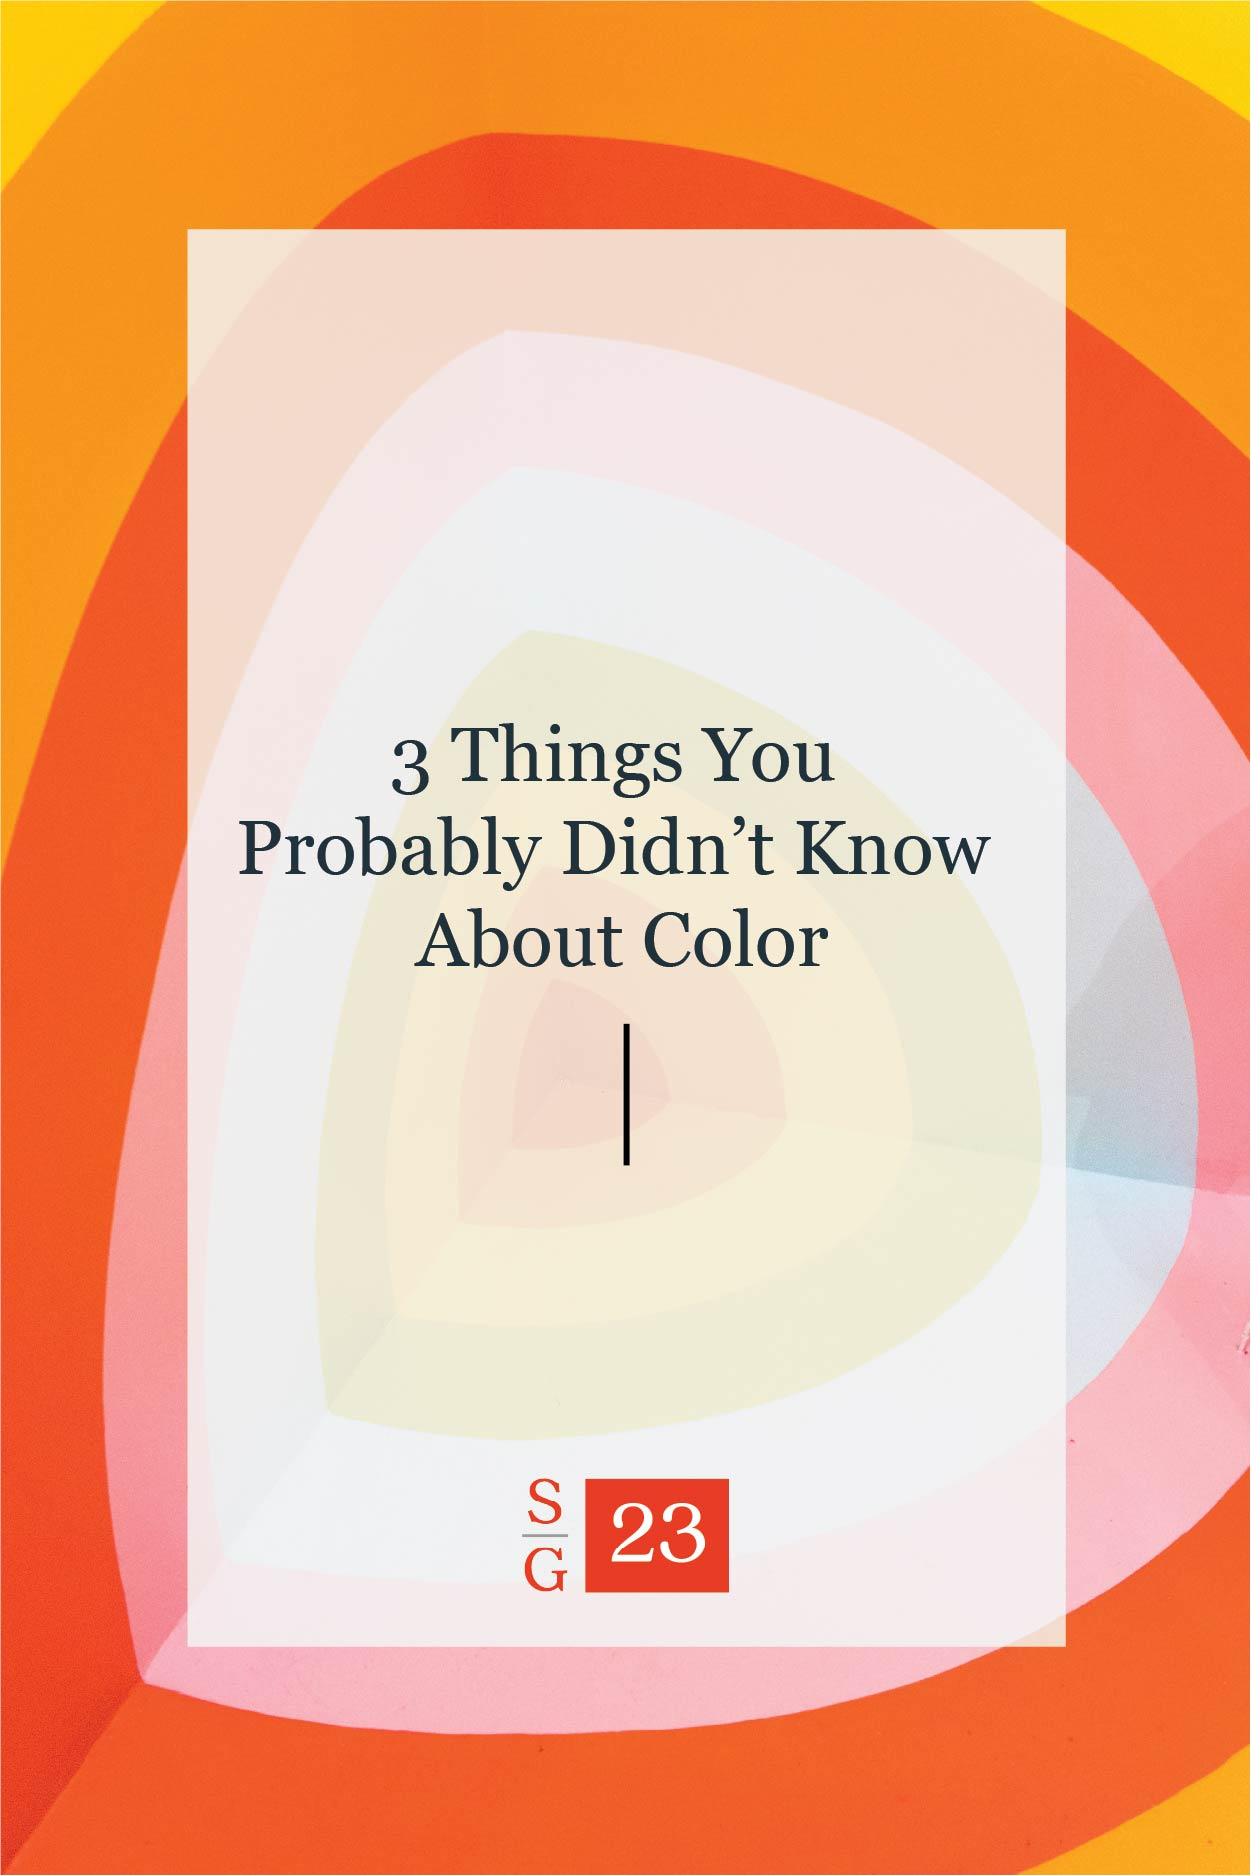 color-facts-01.jpg